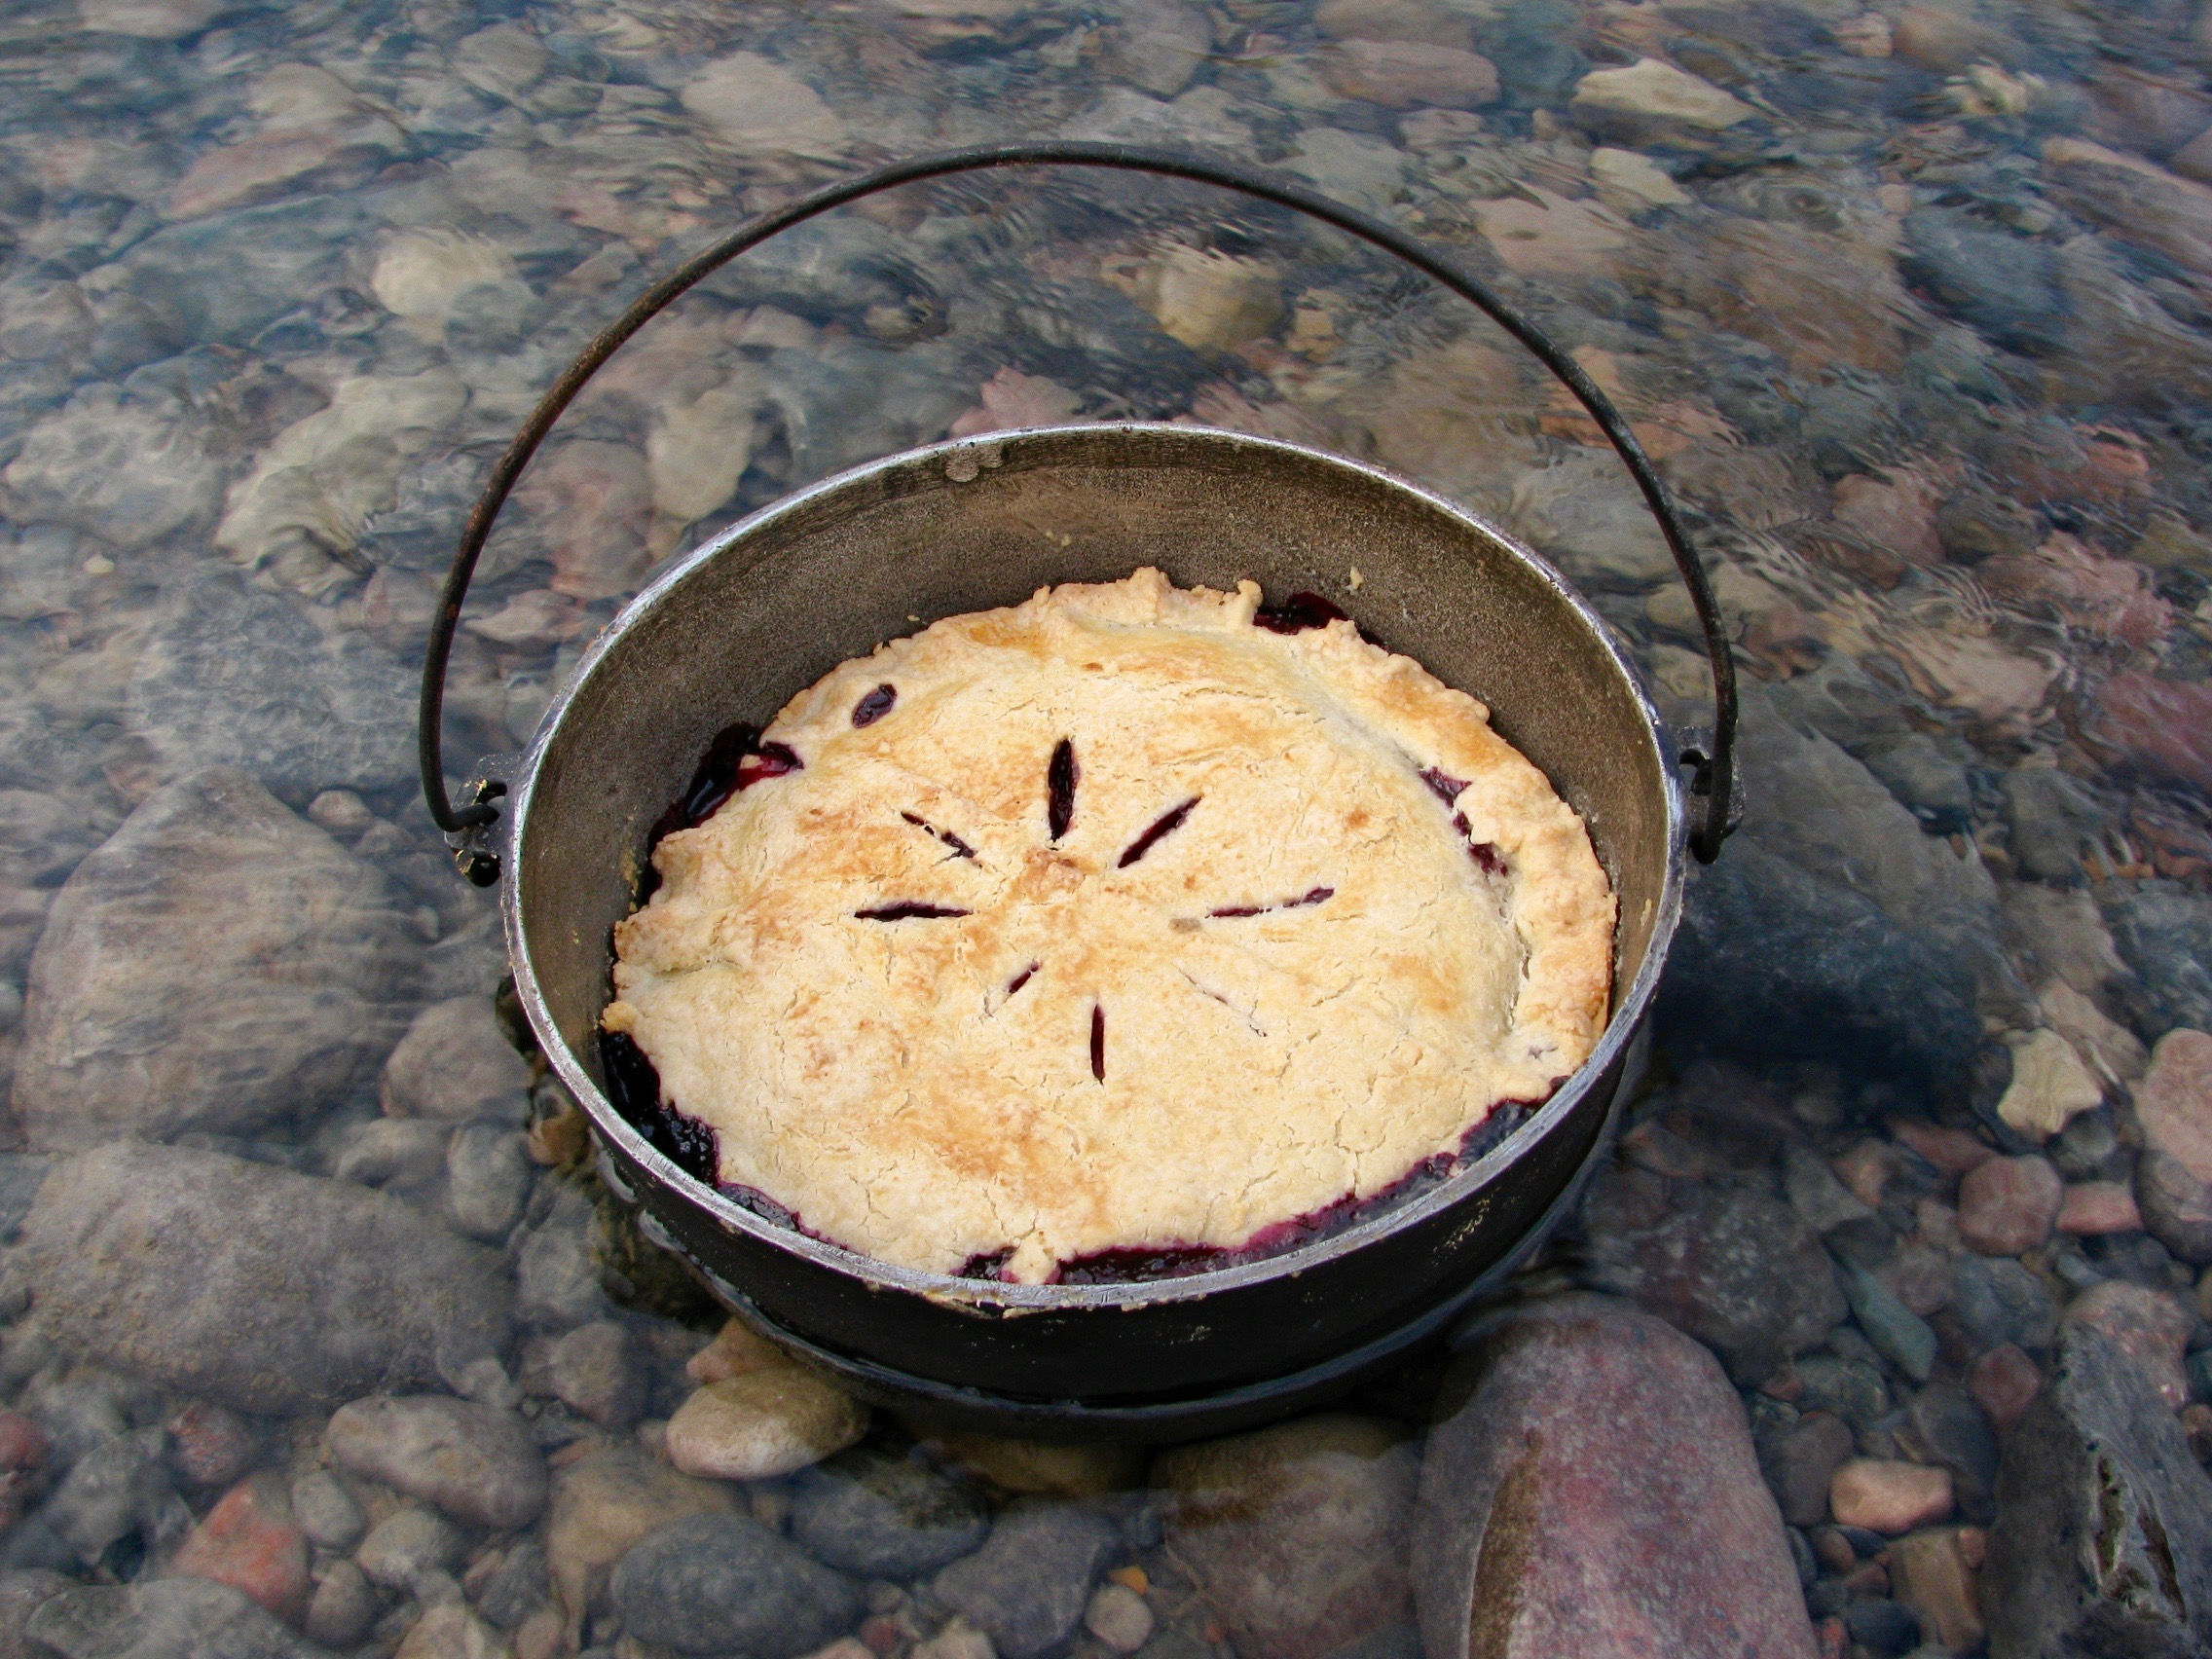 Home made pie with fresh blueberries anyone? Nahanni Wild takes dutch oven cooking further than you thought possible!